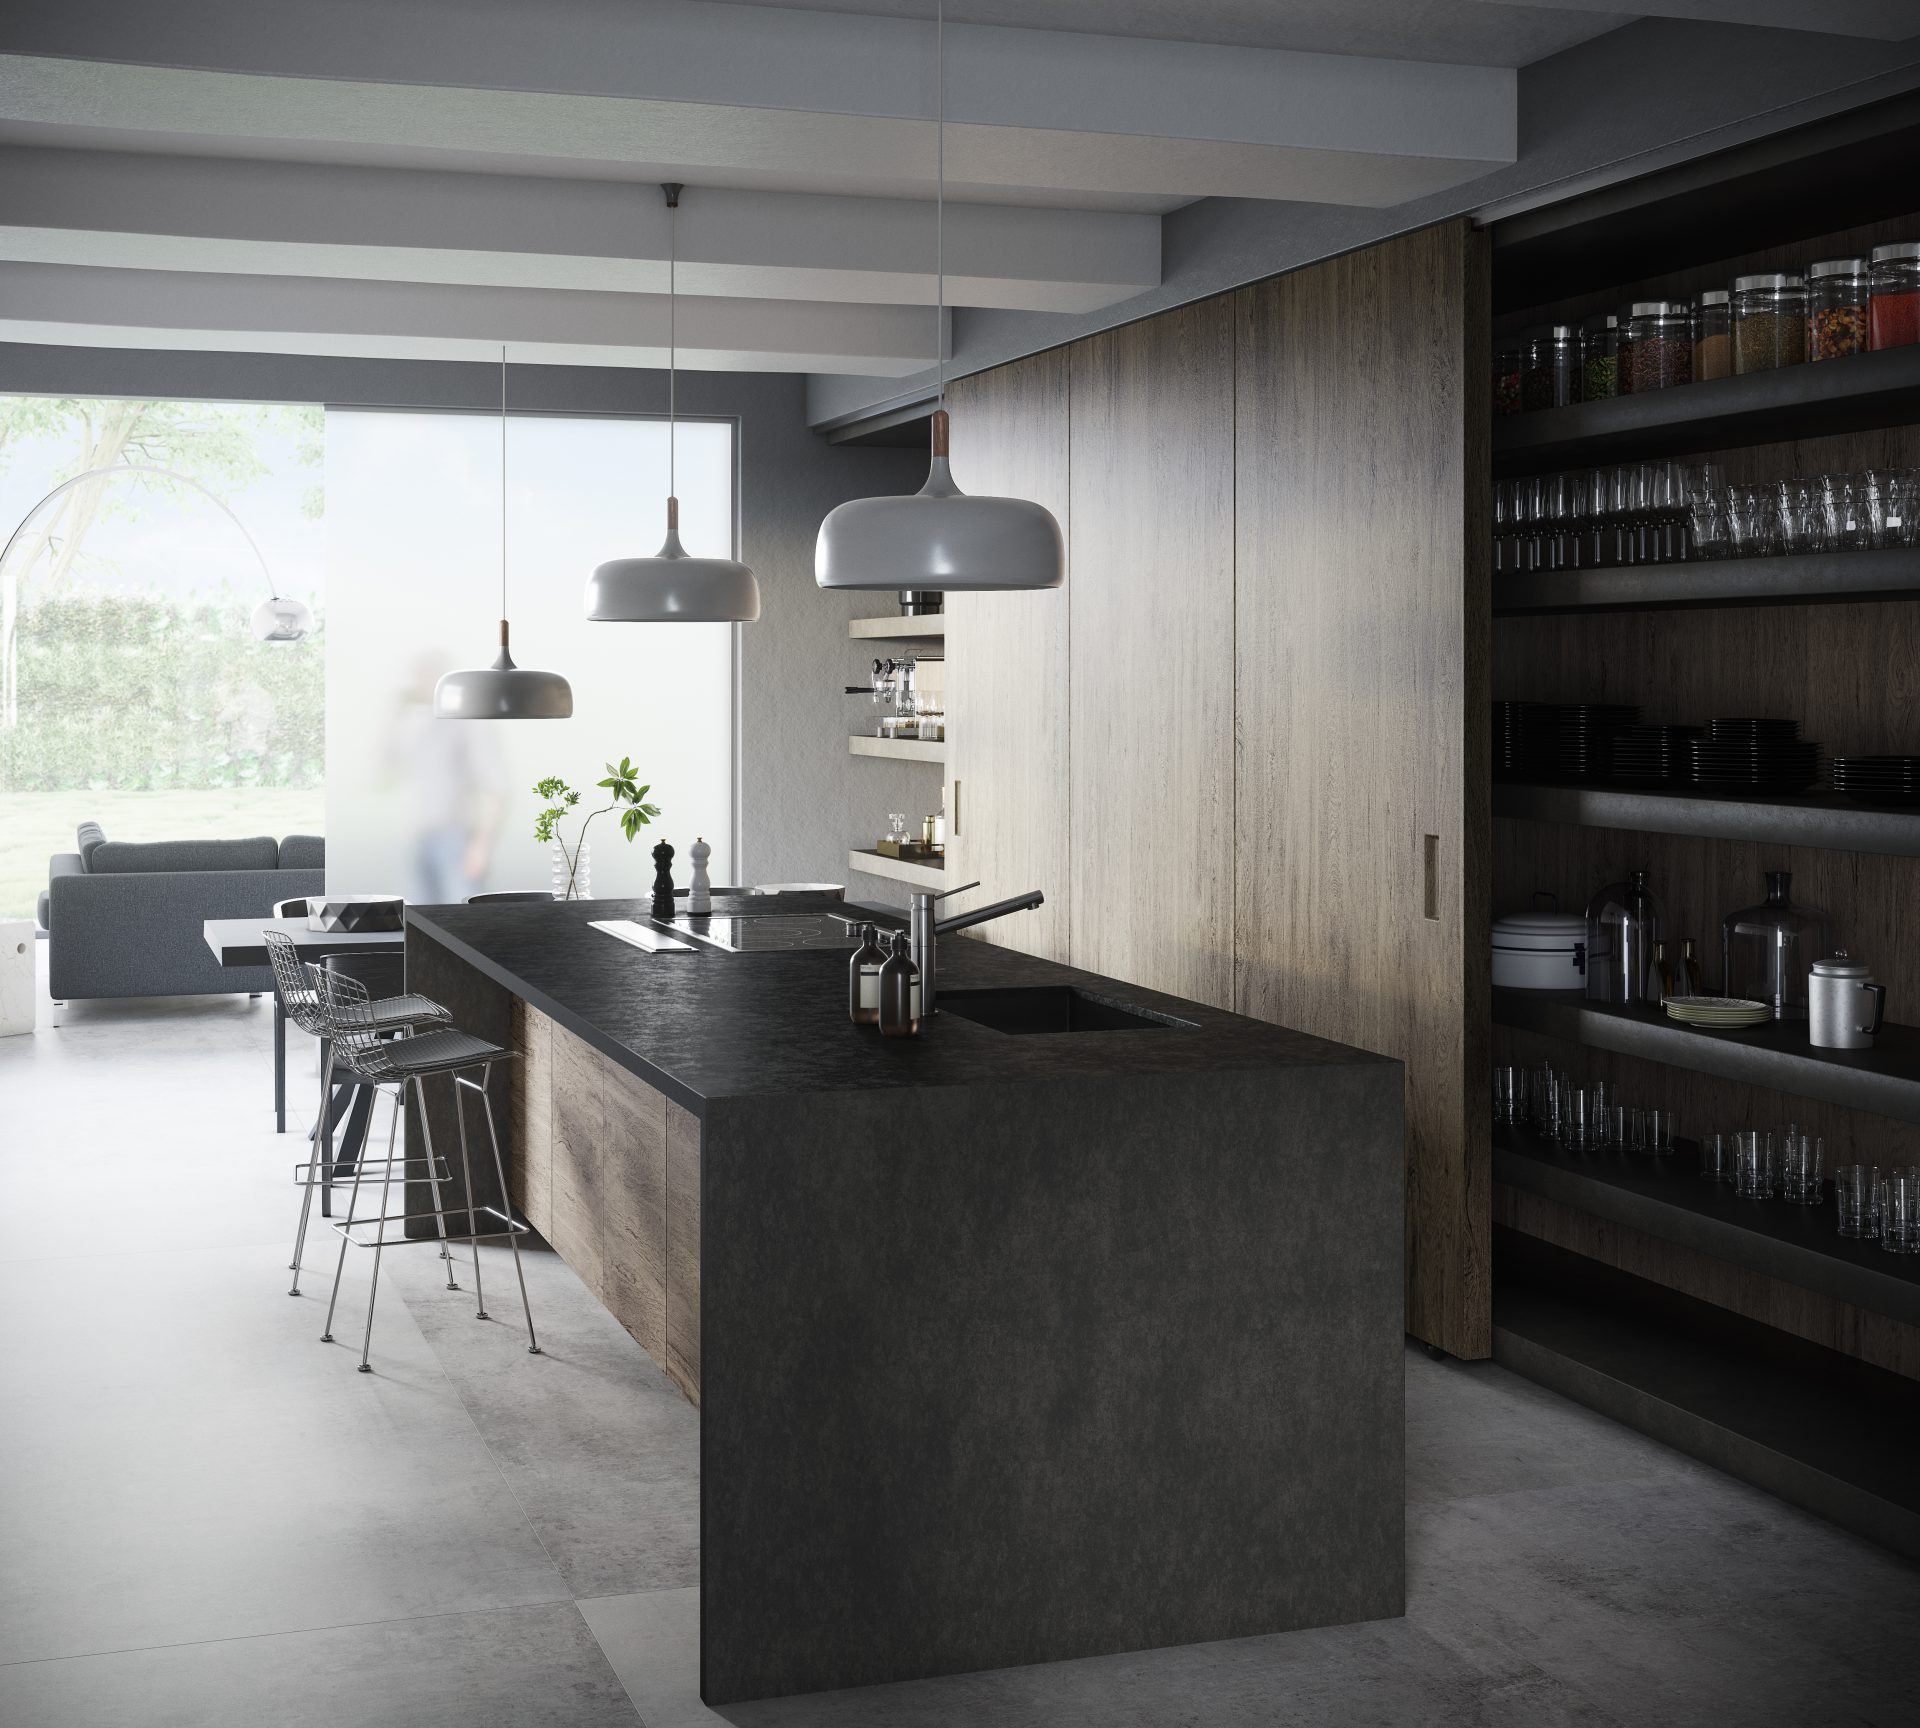 Dekton Kitchen - Milar (1)